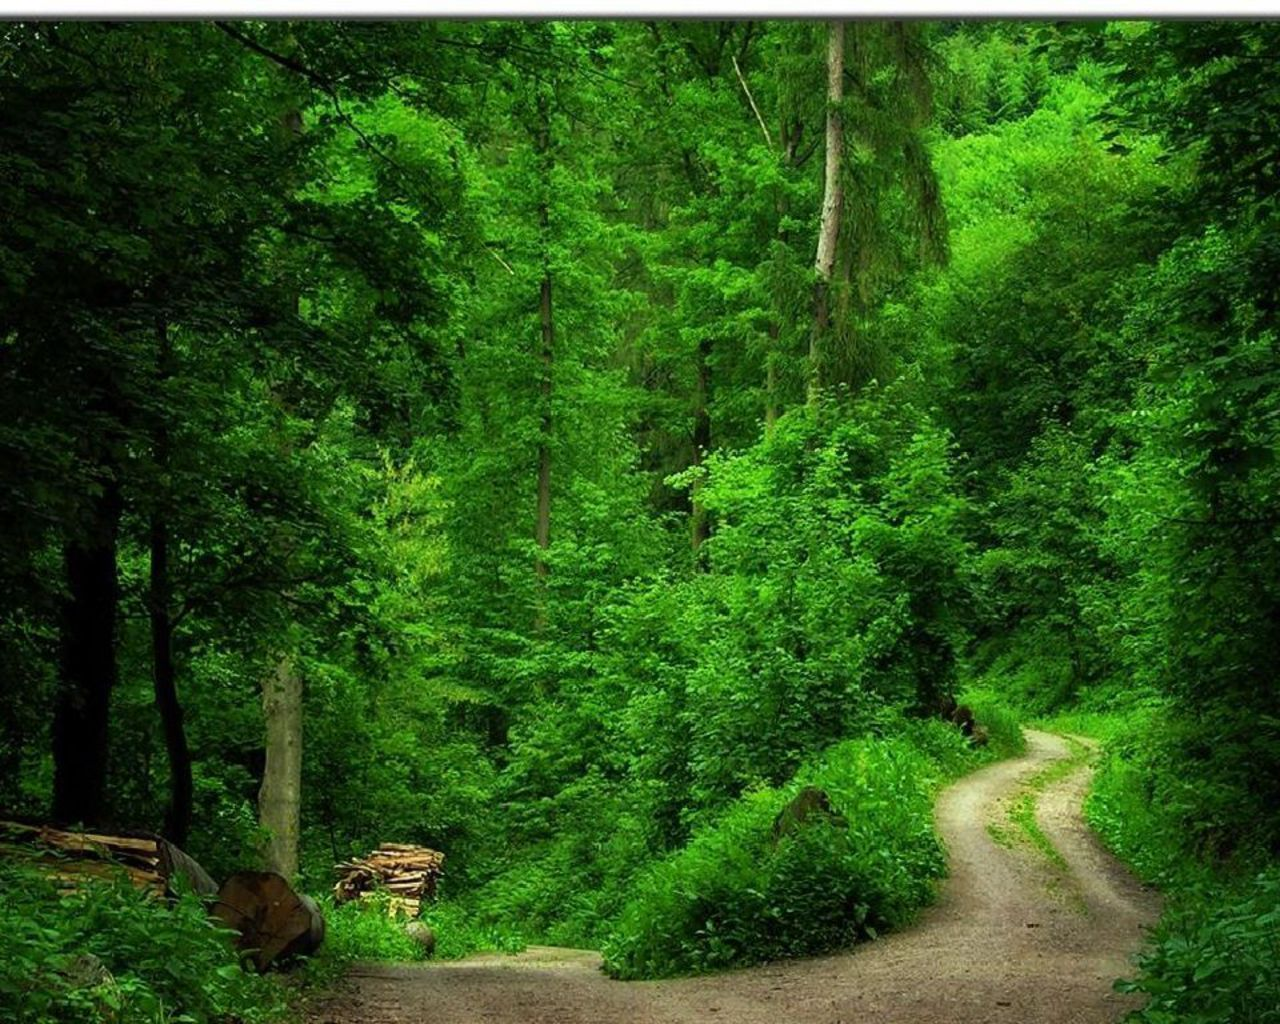 Green Forest Wallpaper   Forest wallpaper, Green wallpaper, Forest pictures